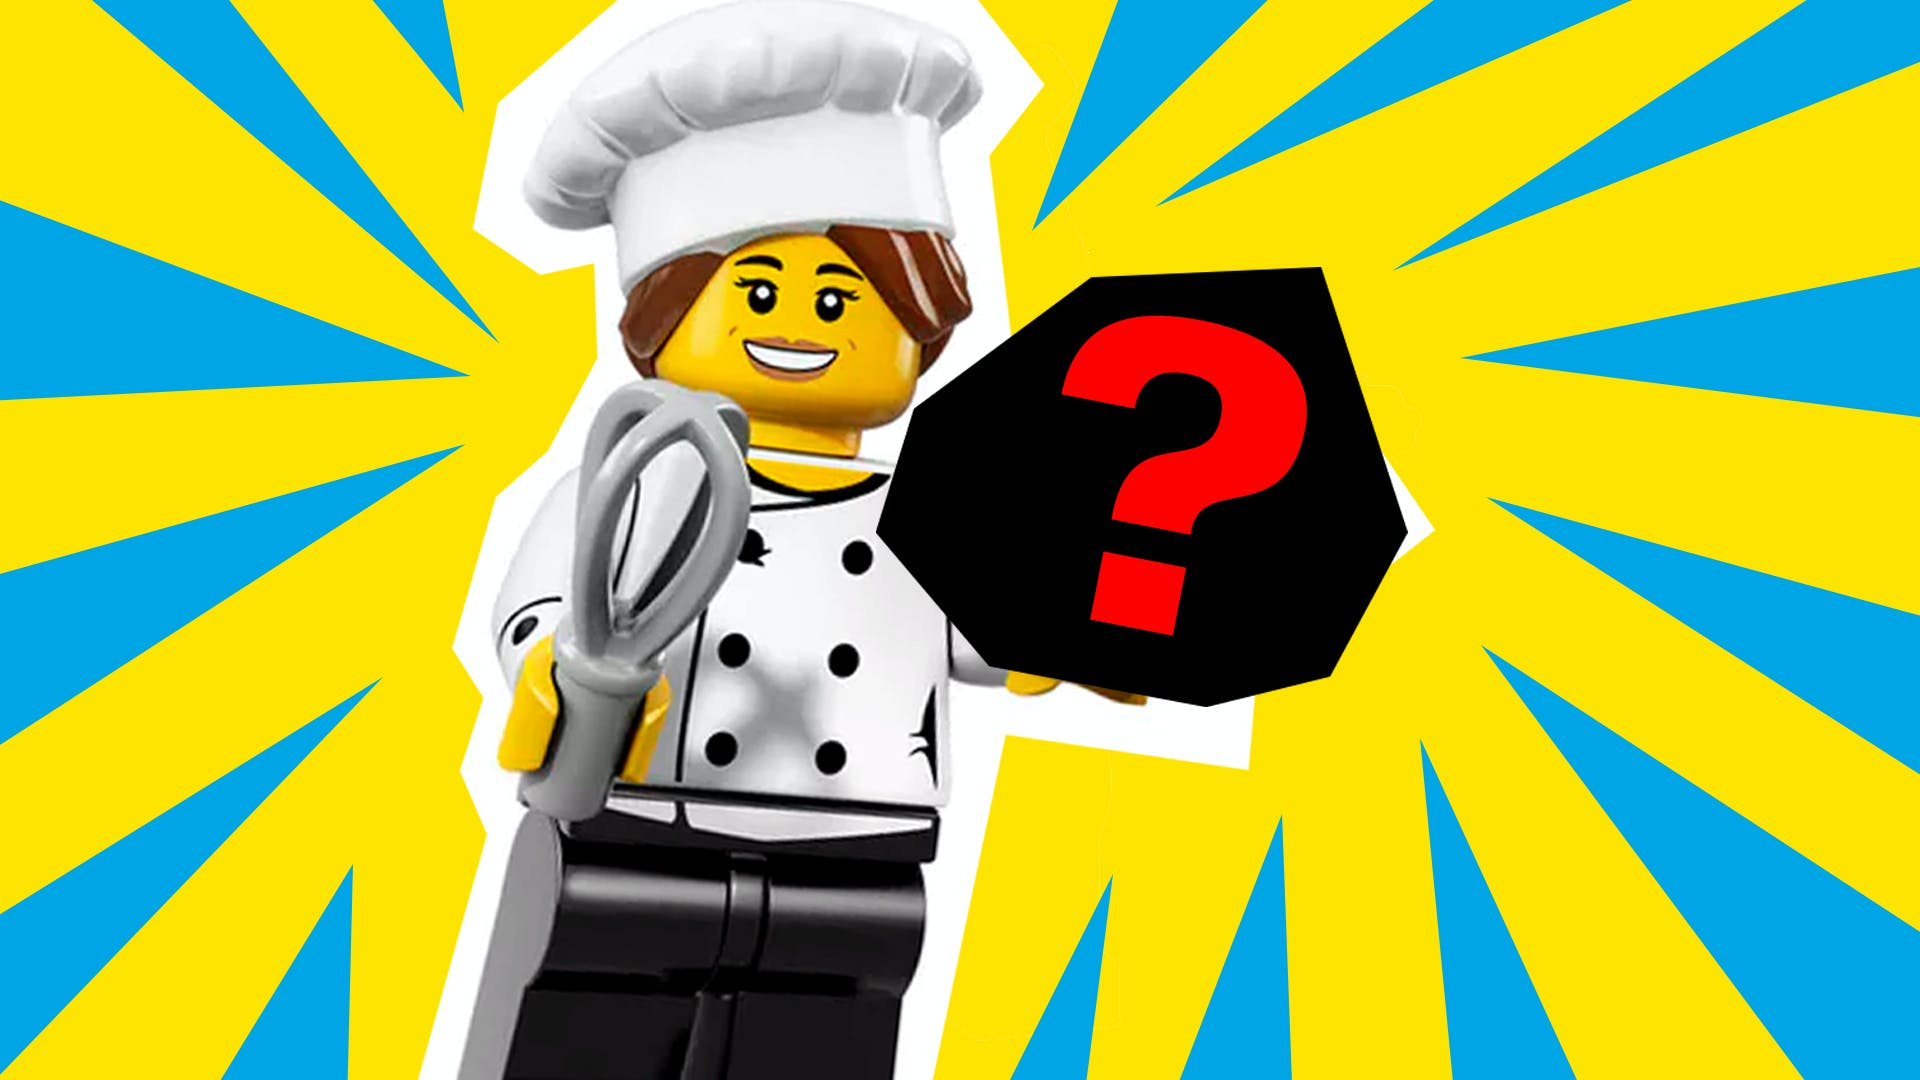 LEGO chef minifig holding a mystery